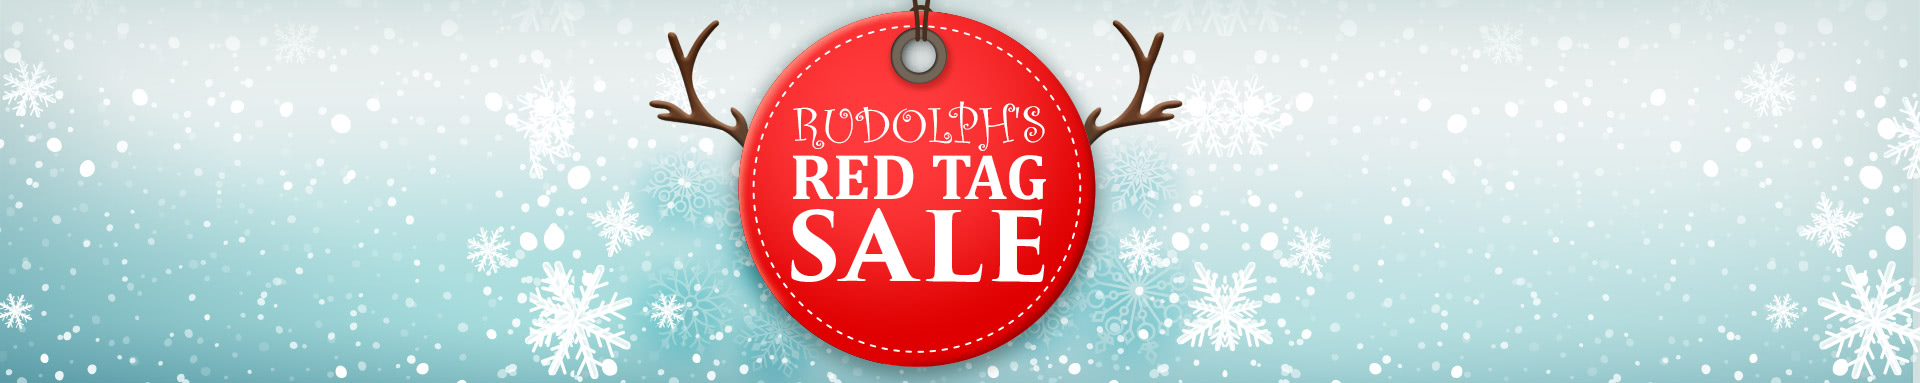 Rudolph's Red Tag Sale